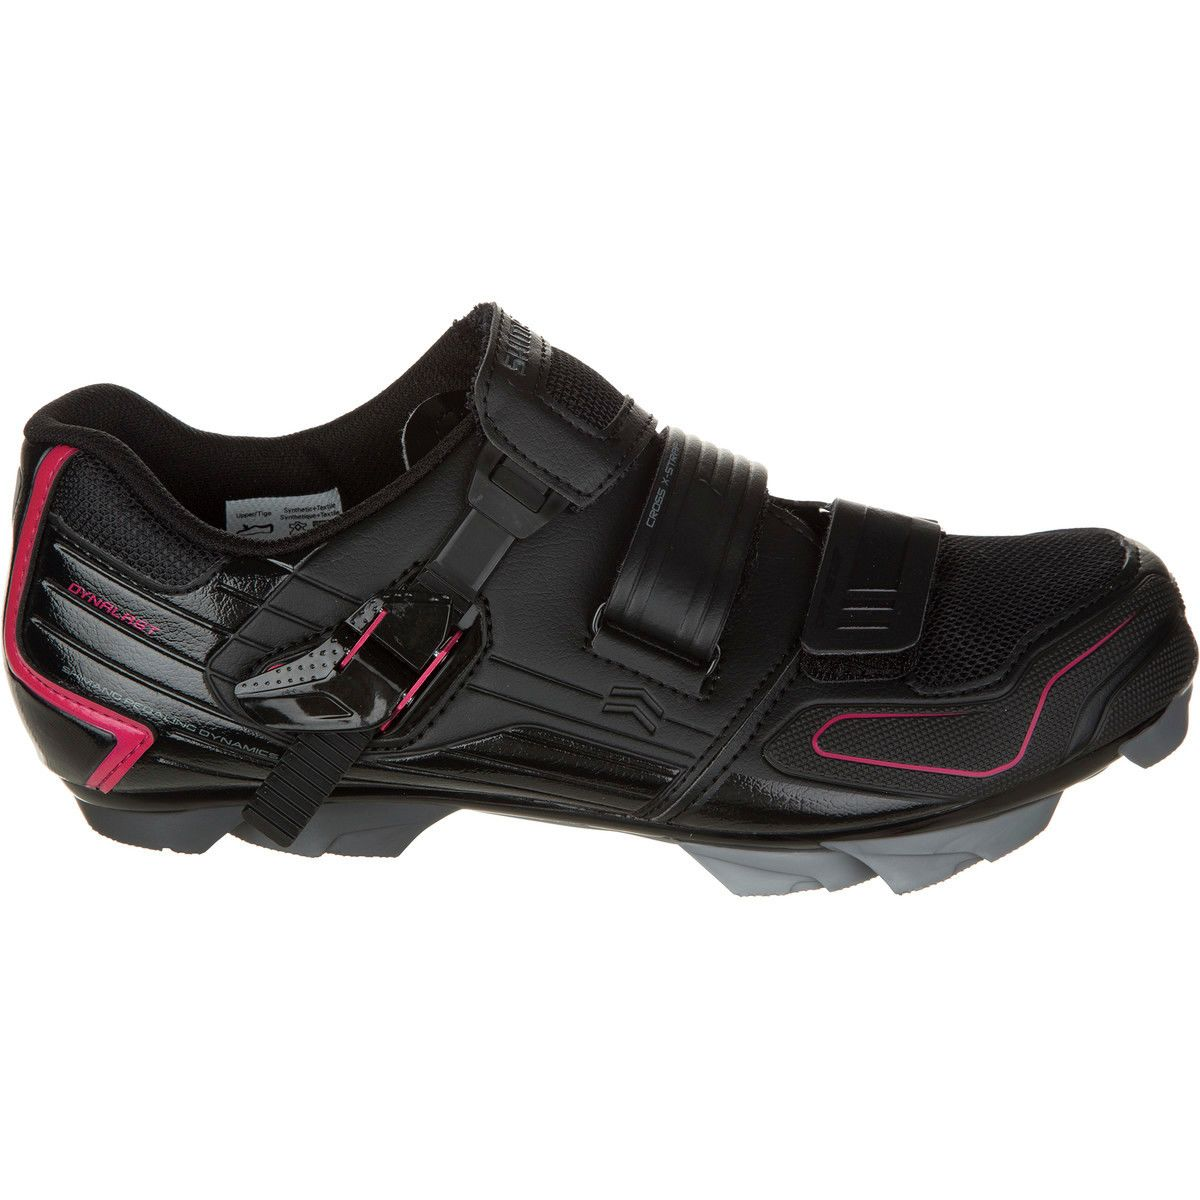 Tri Cycling Shoes For Wide Feet